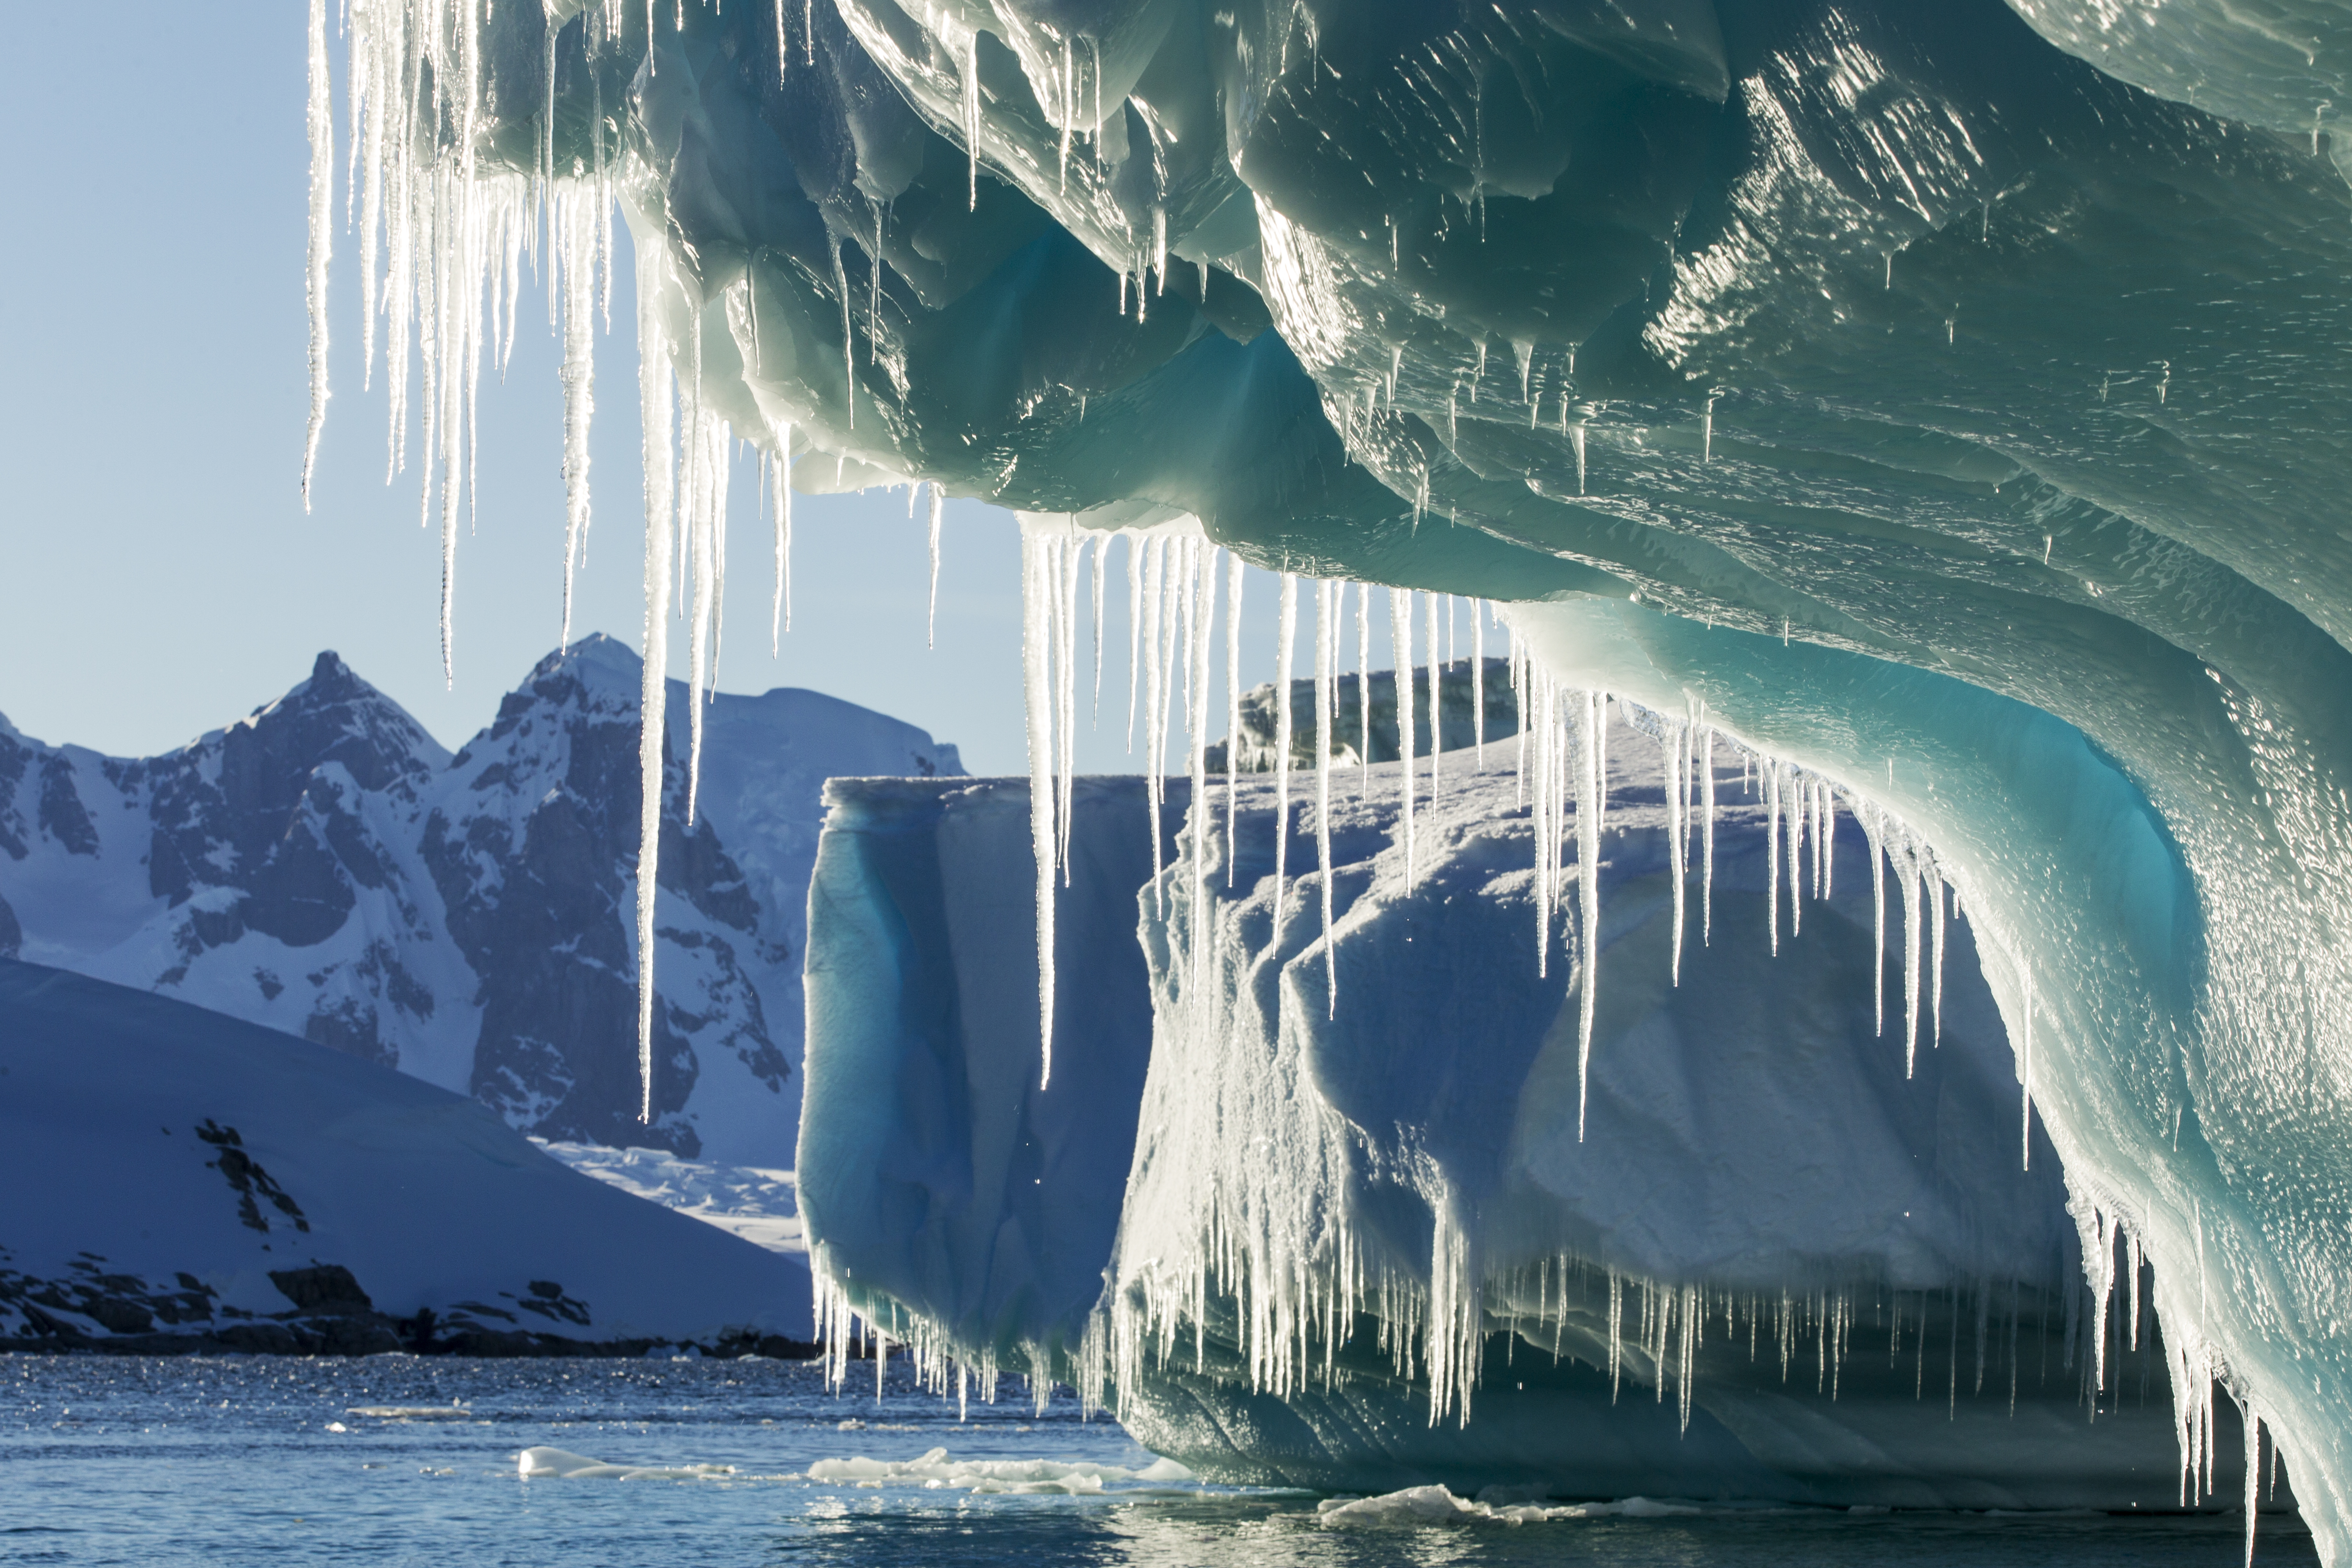 Antarctica, Petermann Island, Icicles hang from melting iceberg near Lemaire Channel